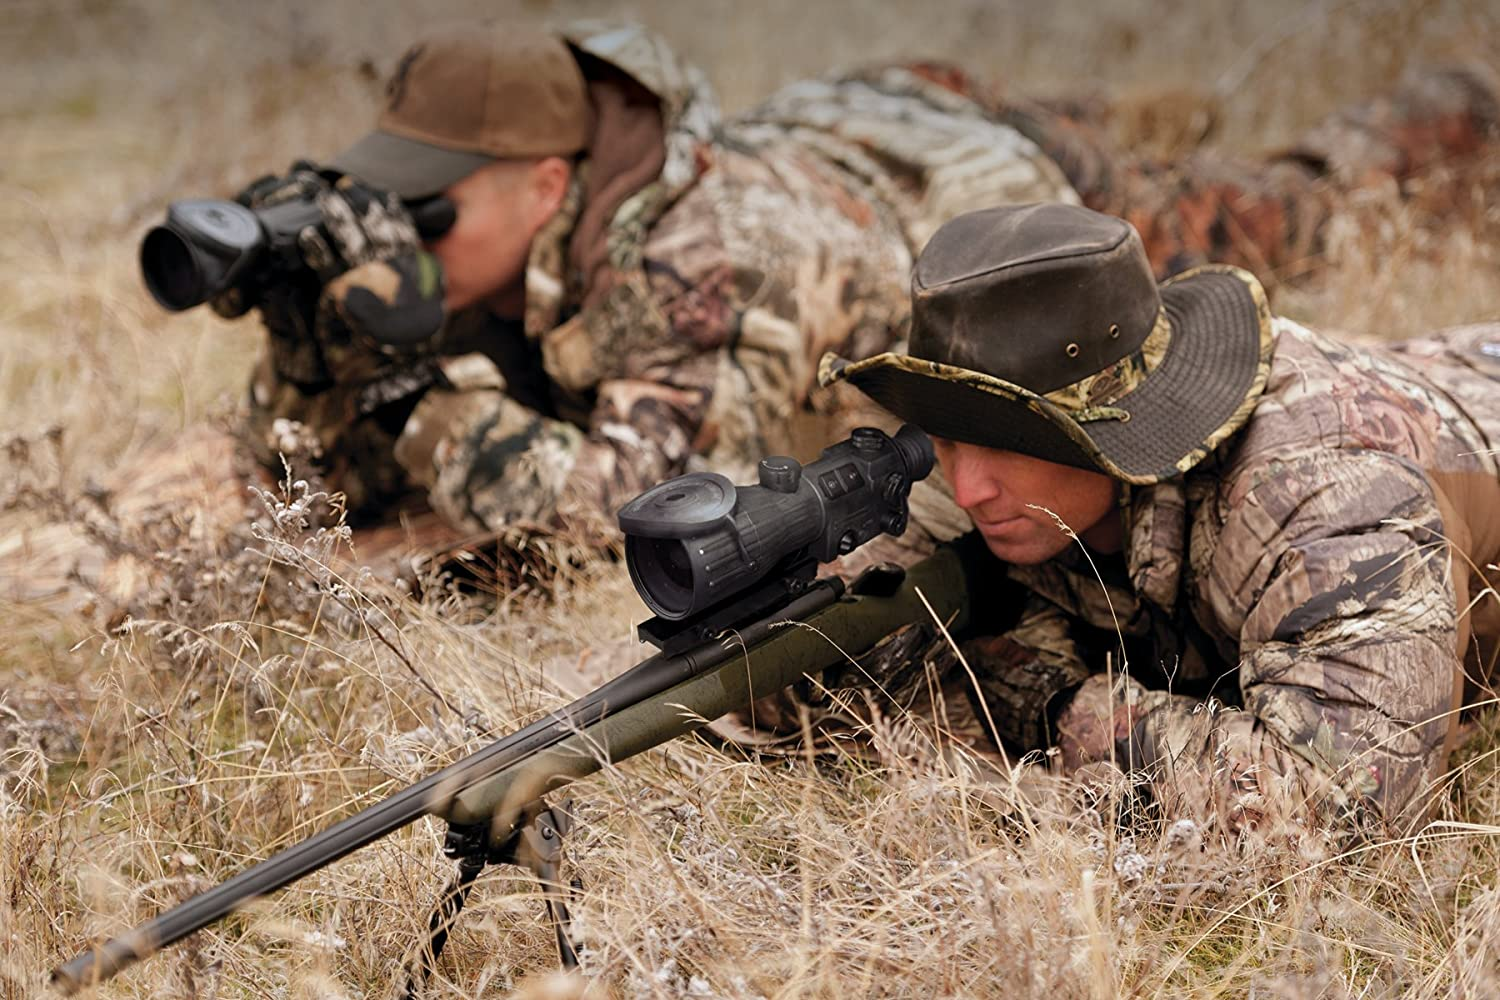 Armasight Orion 5x Gen 1 Night Vision Rifle Scope U S Soldiers Develop High Tech Gadget For Better Sports Outdoors